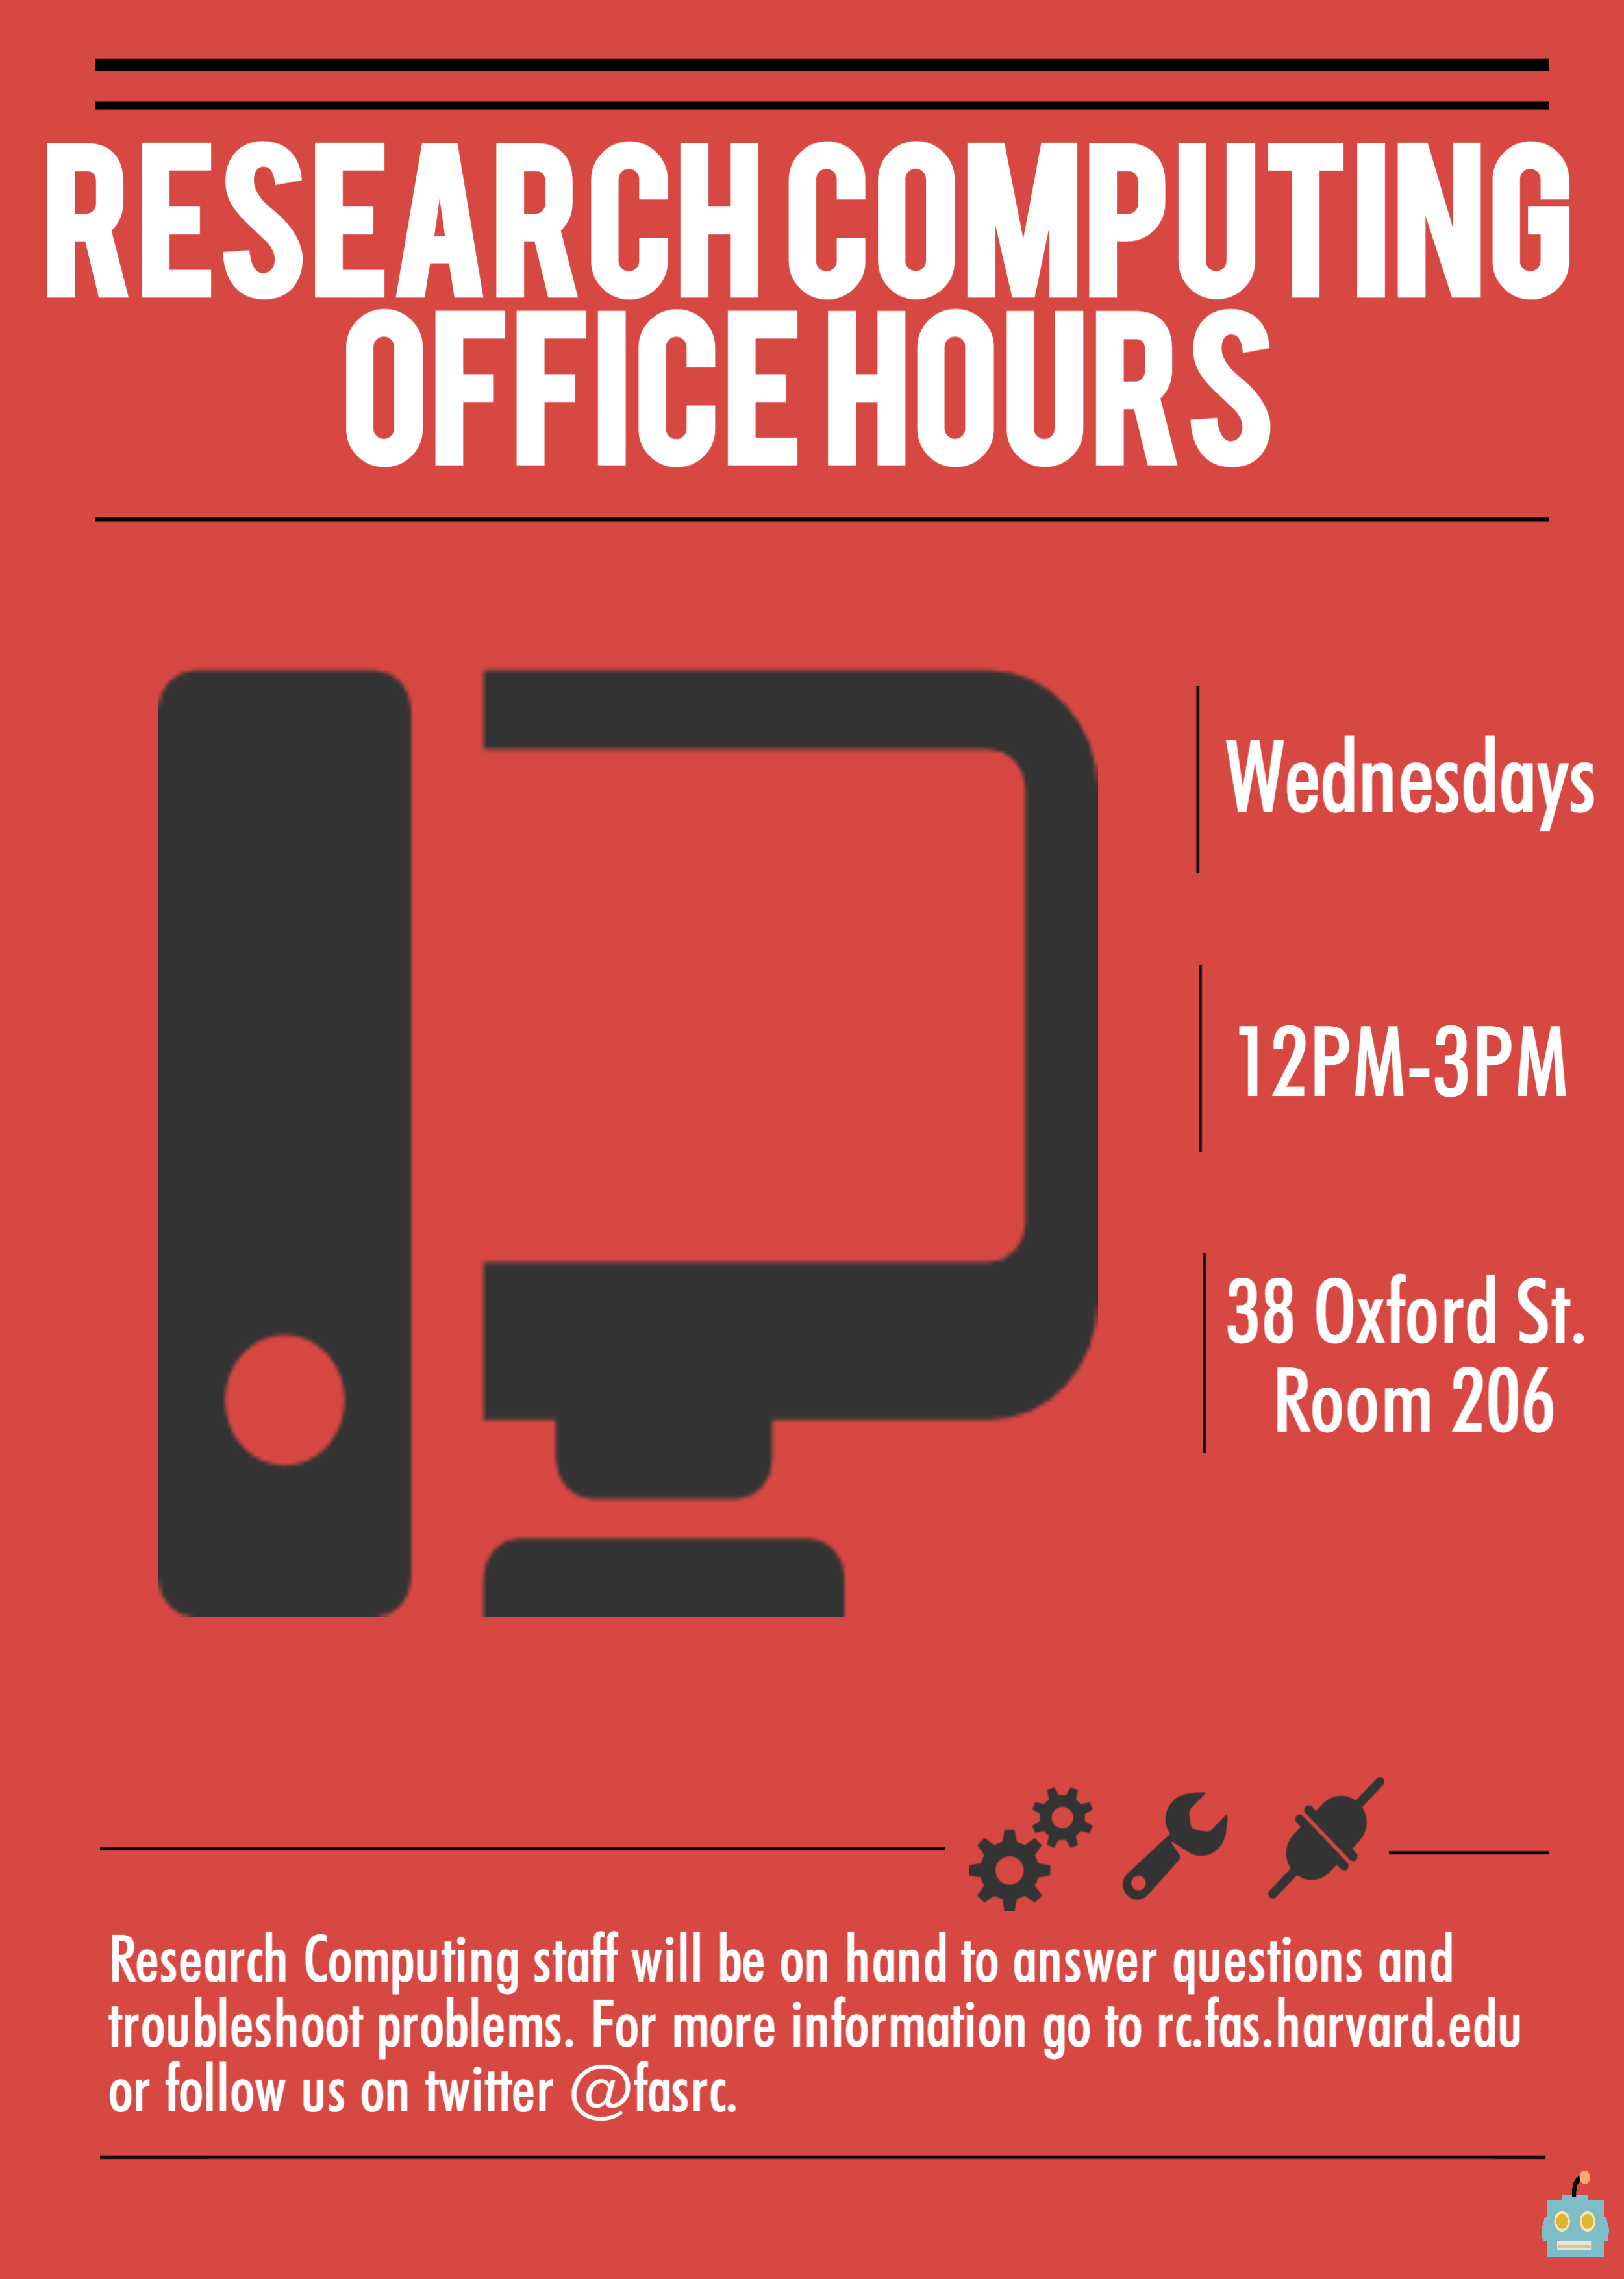 RC Office Hours Poster